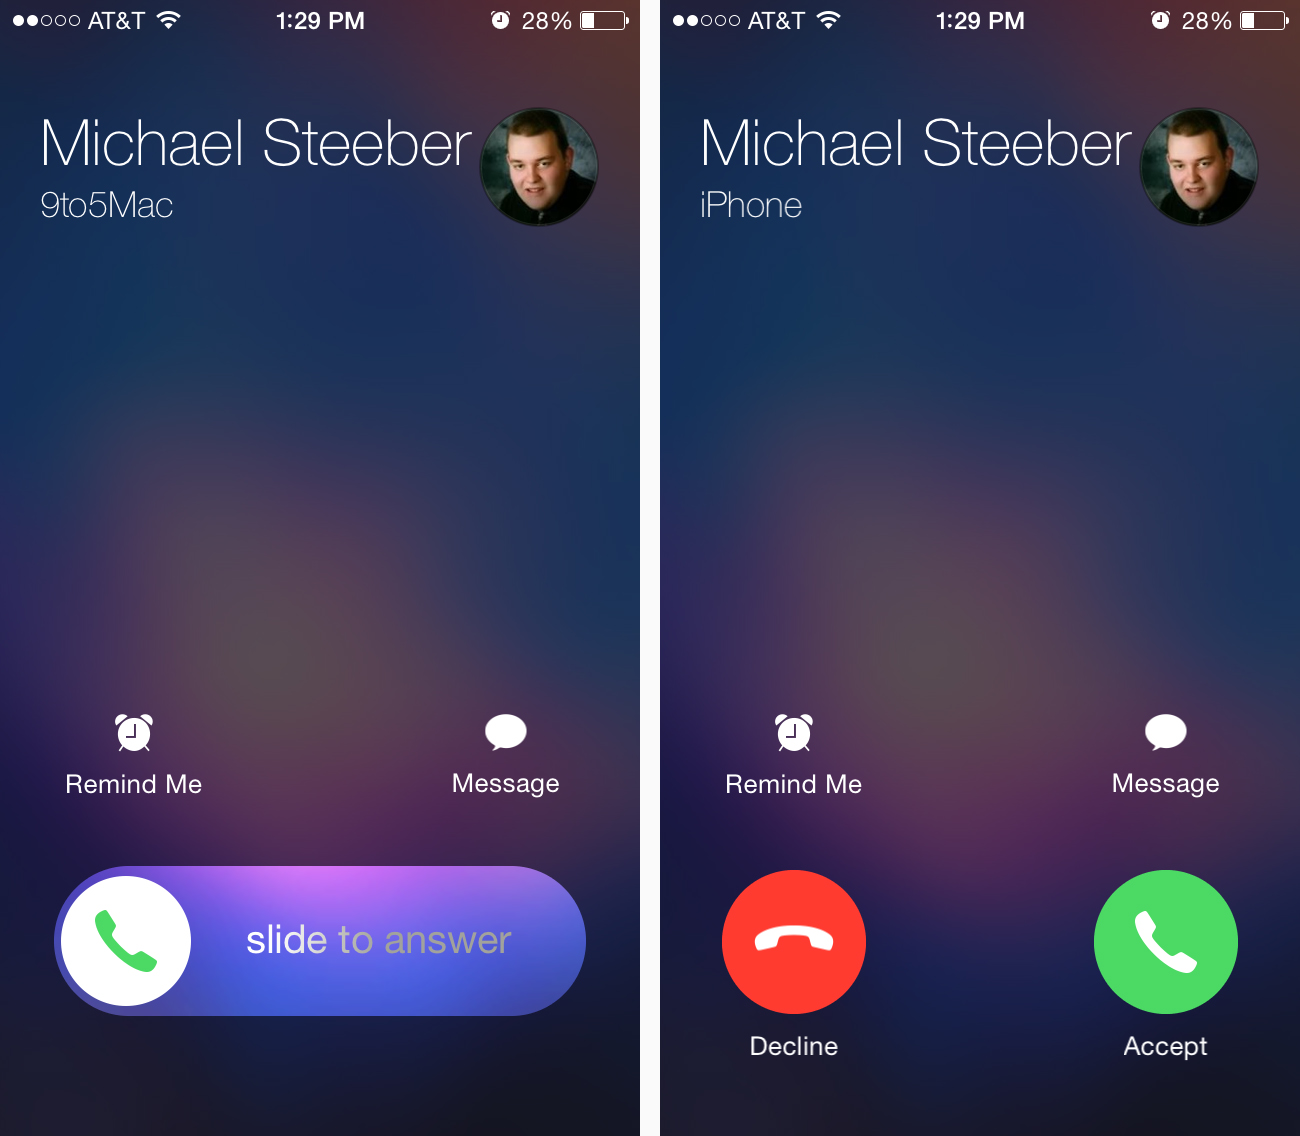 supprimer une application iphone 6s